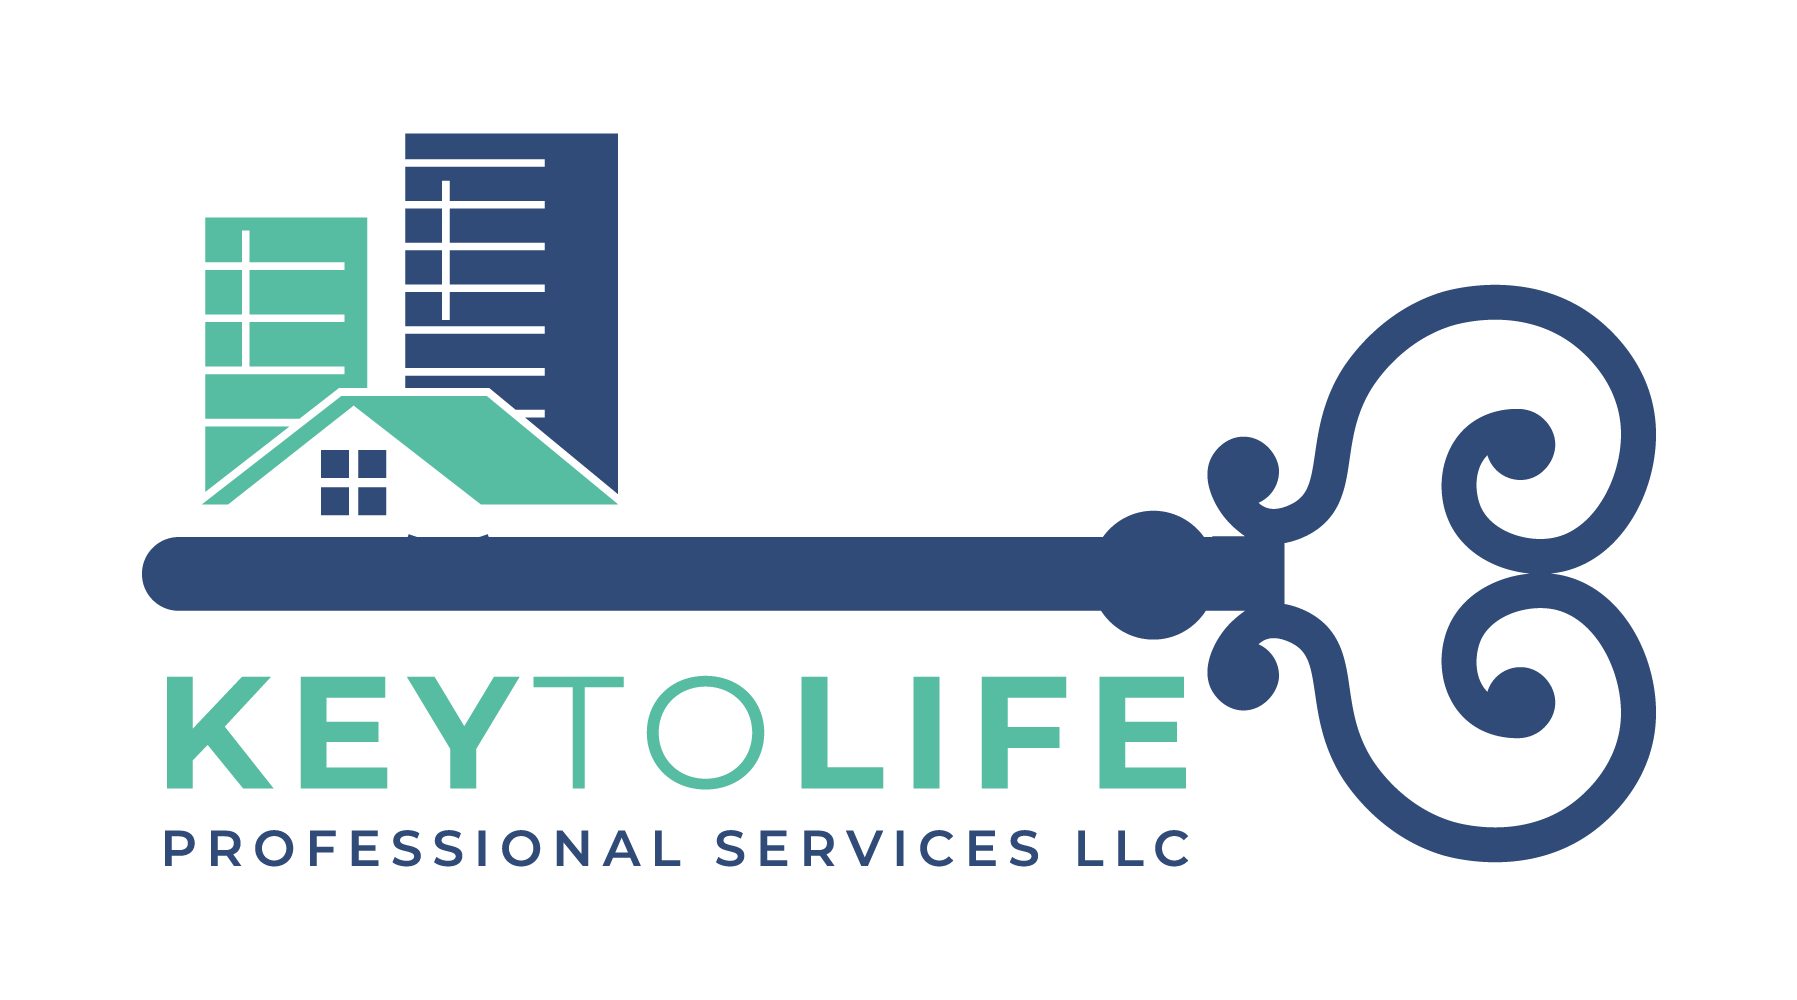 KeyToLife Professional Services LLC